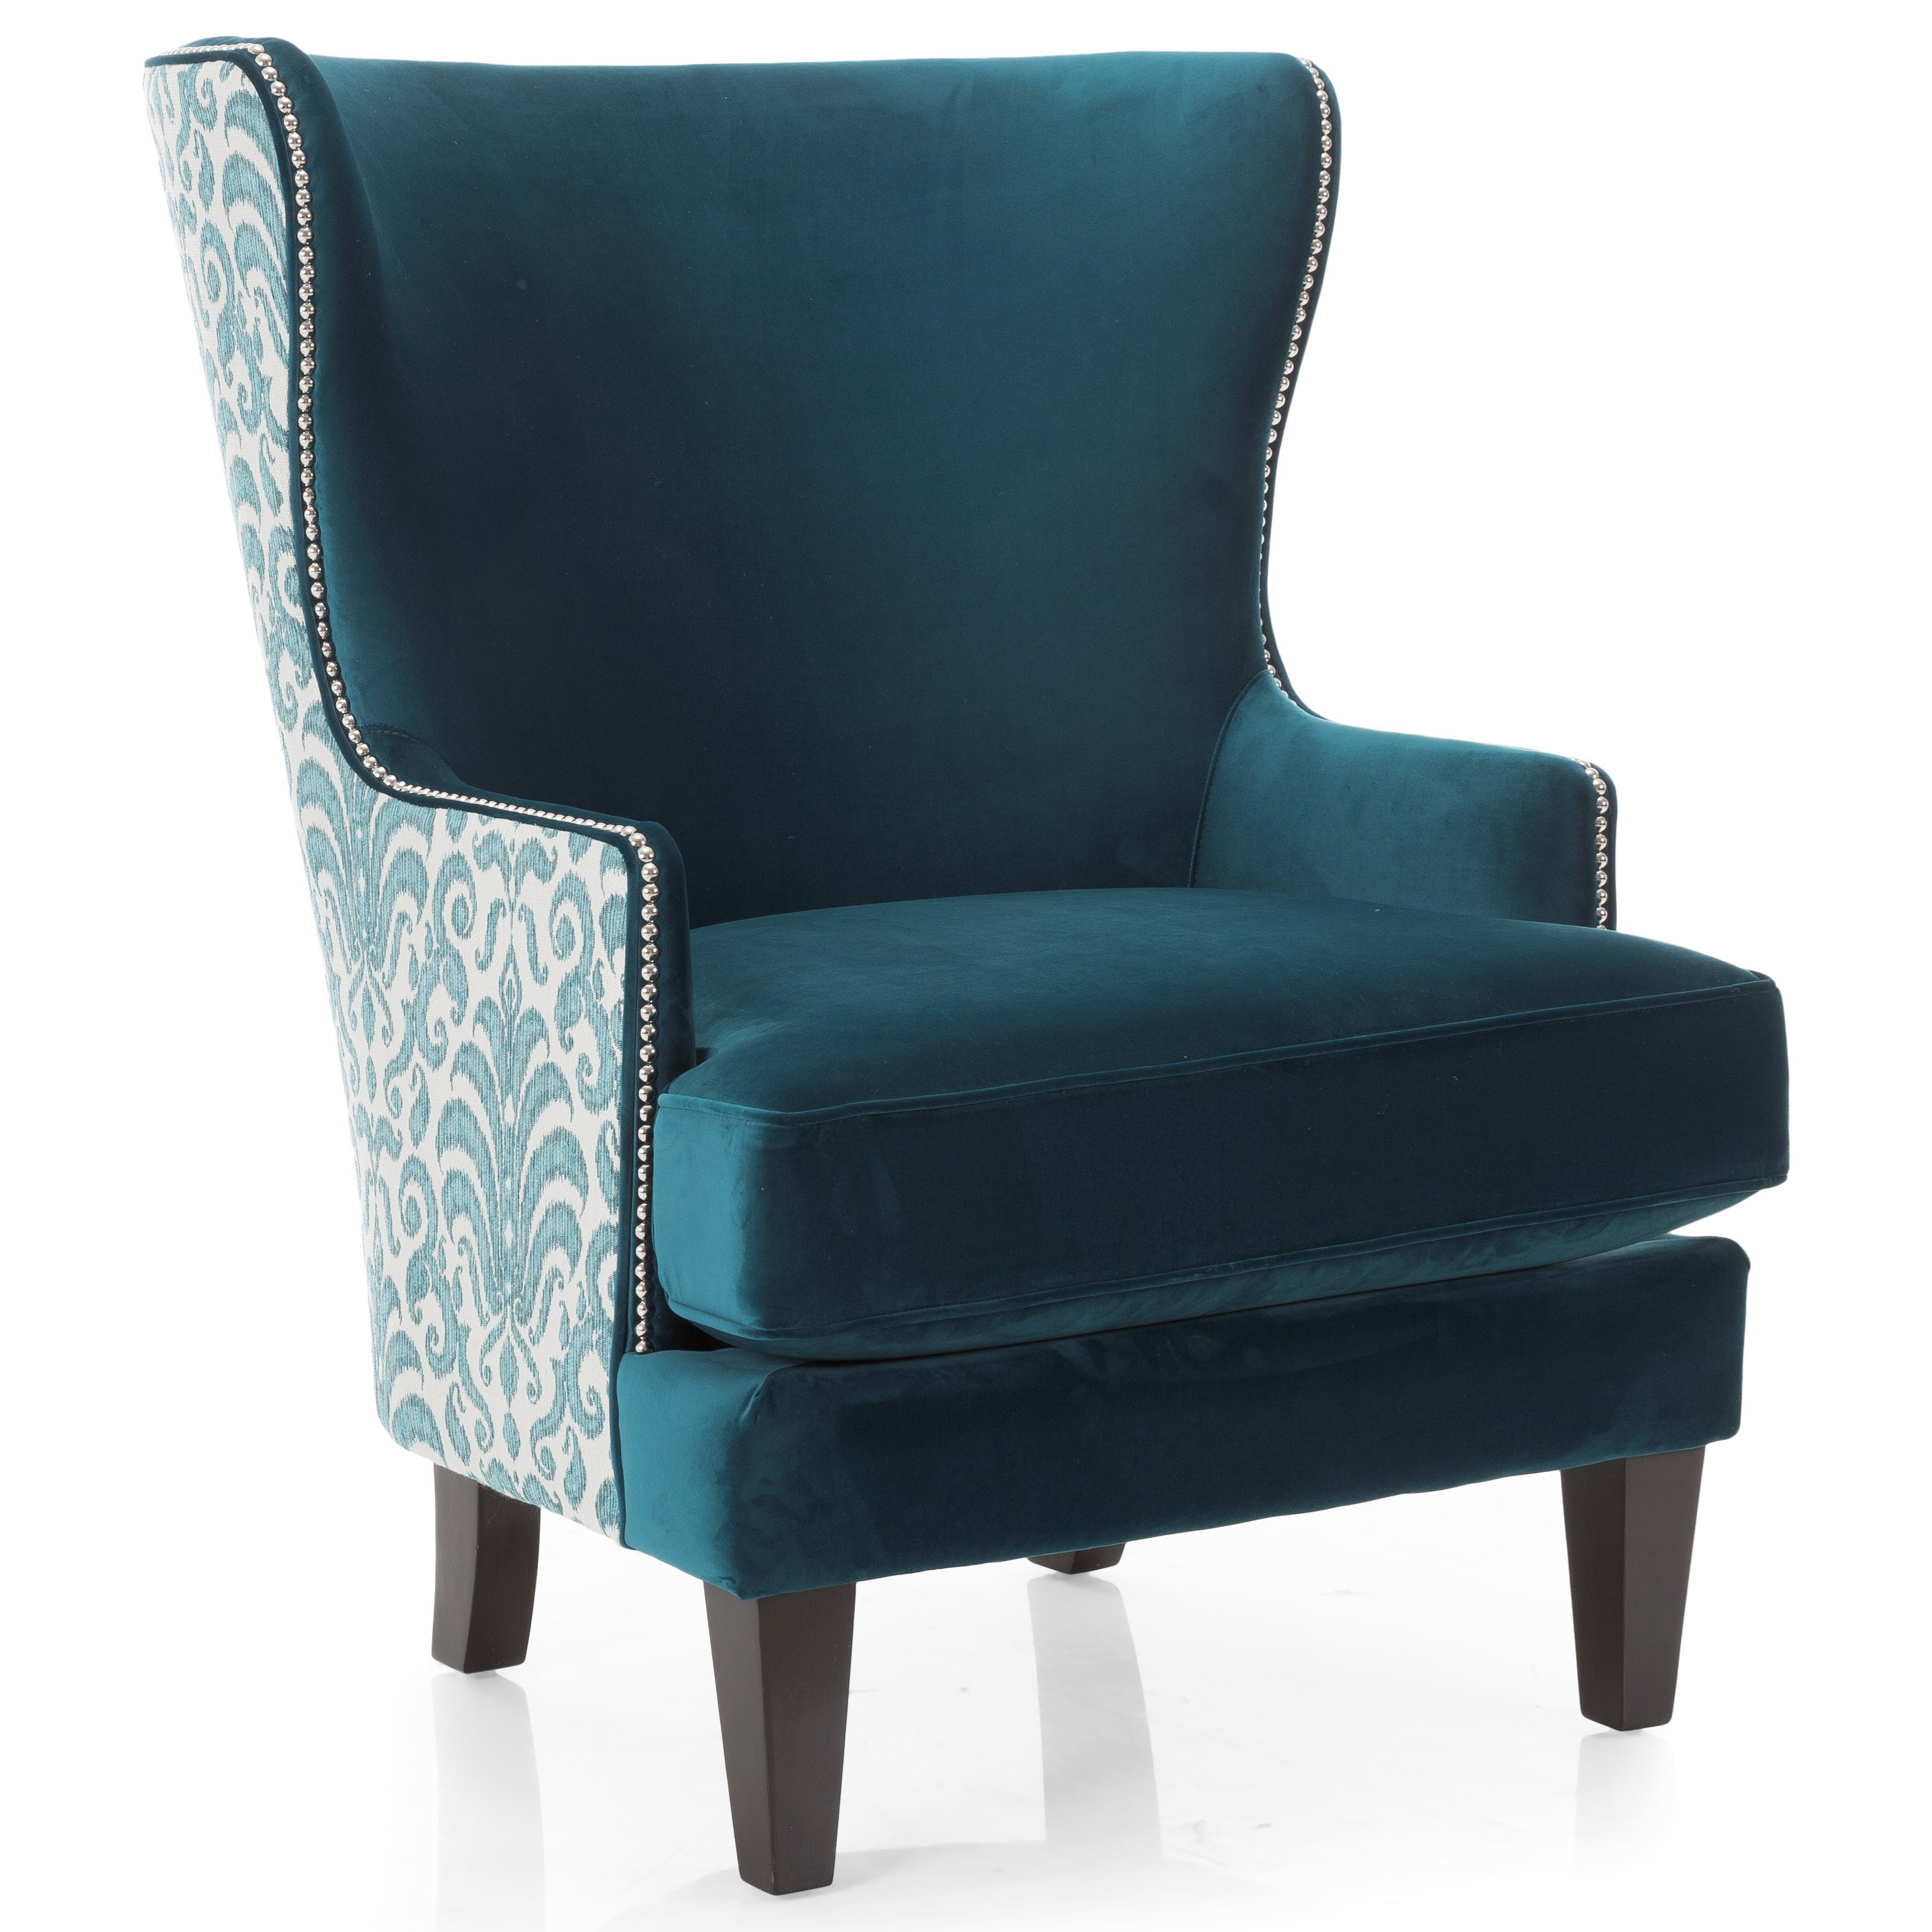 2492 Wing Back Chair by Decor-Rest at Upper Room Home Furnishings